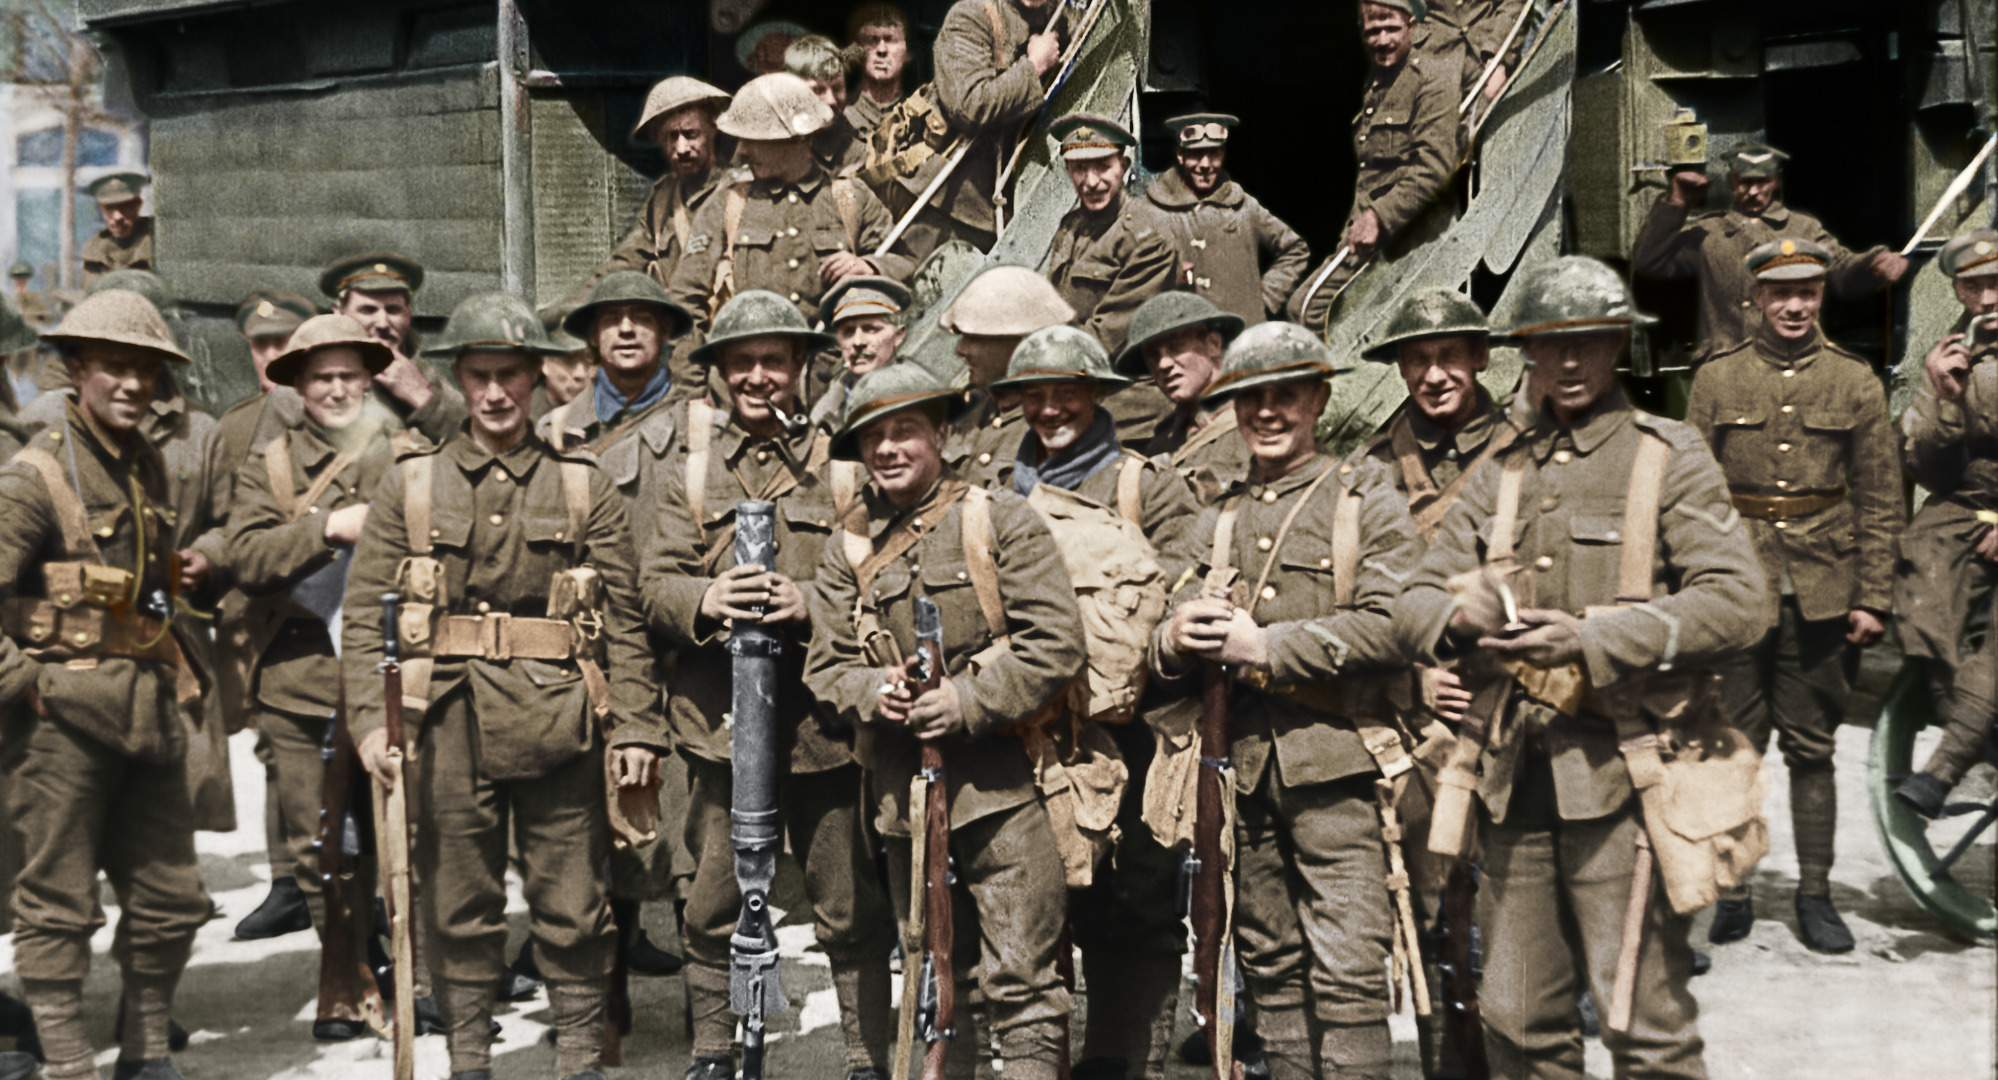 Peter Jackson's WWI documentary 'They Shall Not Grow Old' transferred old war footage into restored, colorized footage given a 3-D effect.